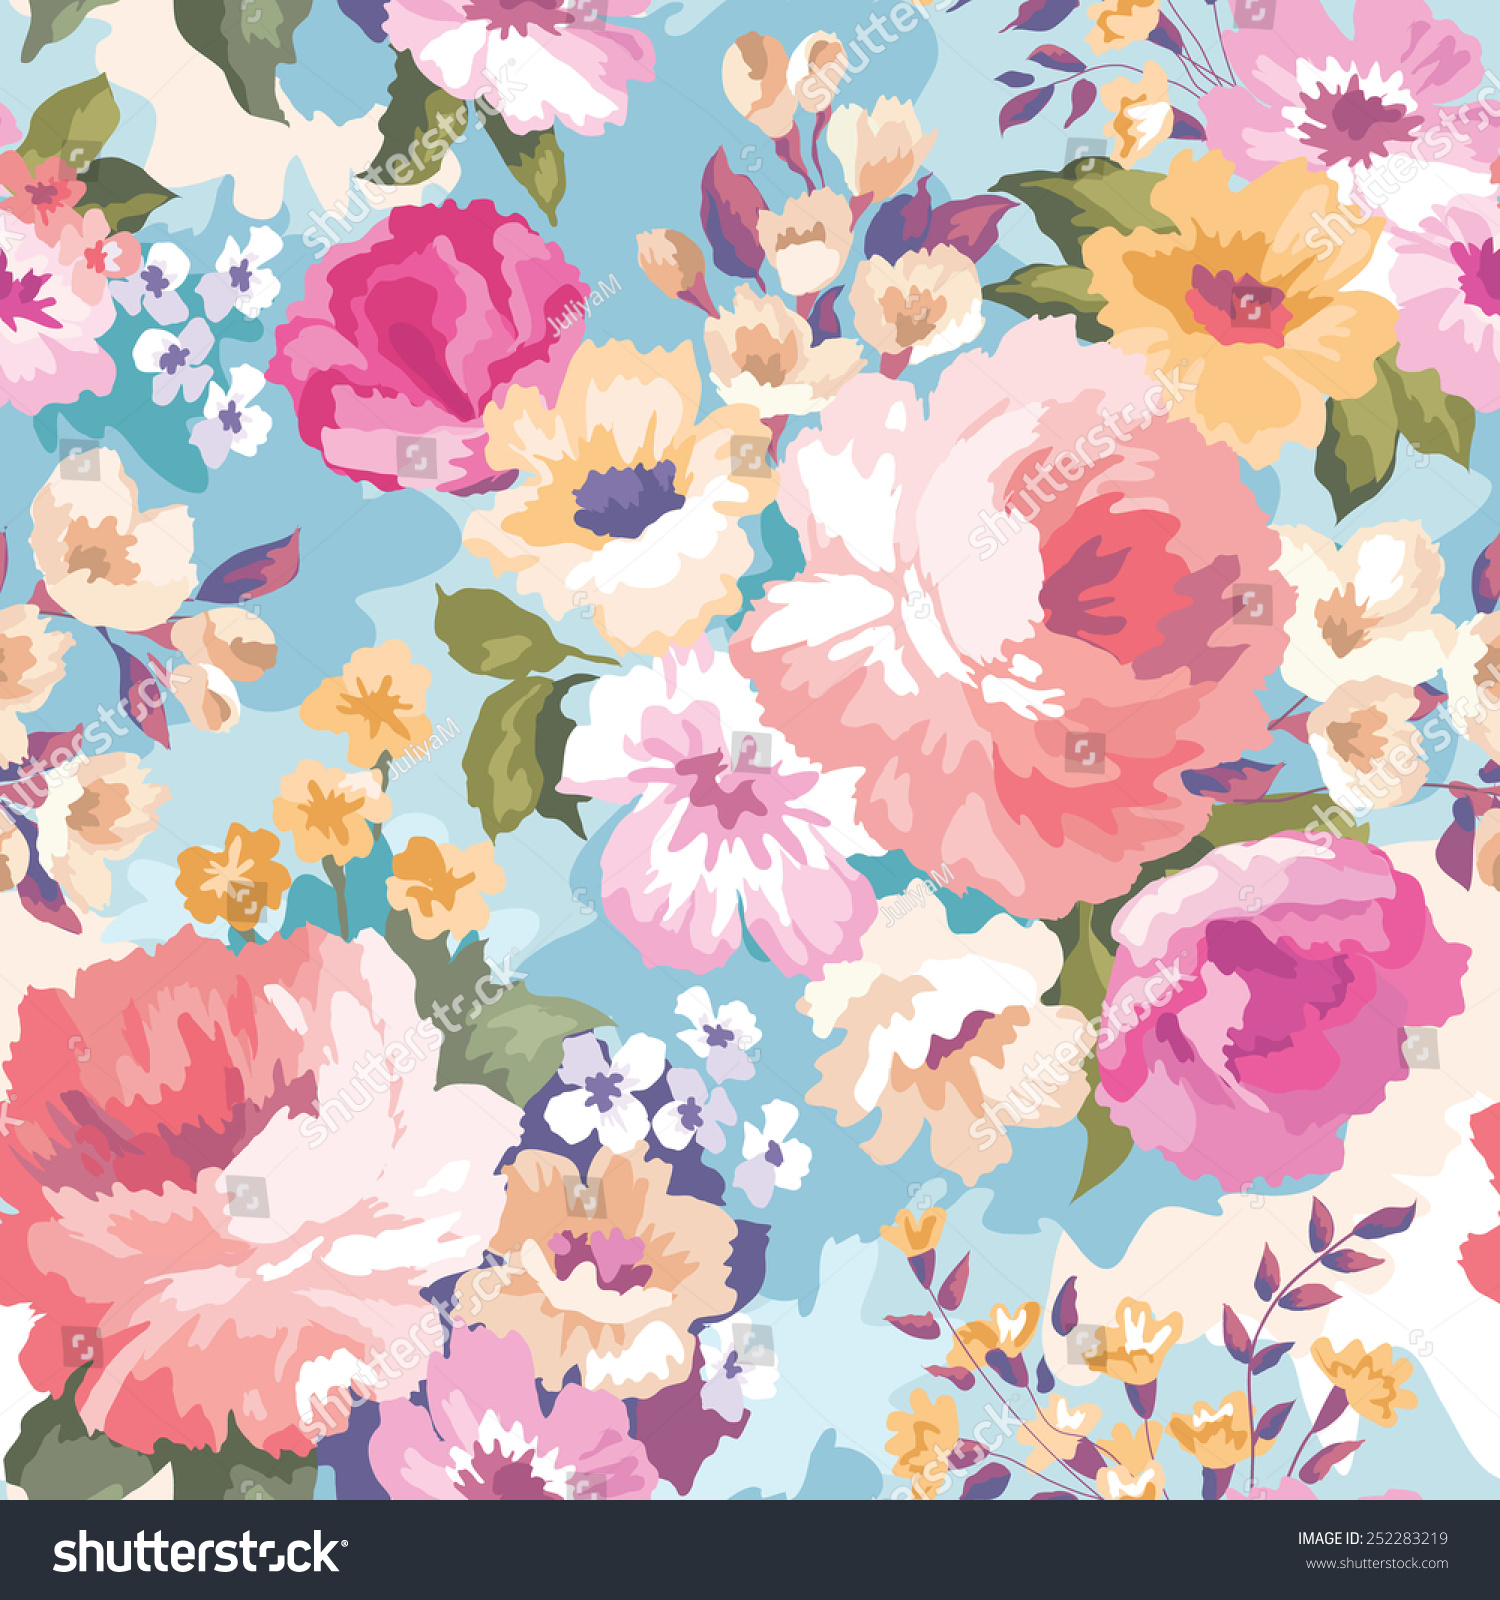 Cute Pretty Flower Calendar Wallpaper Beautiful Seamless Floral Pattern Watercolor Background